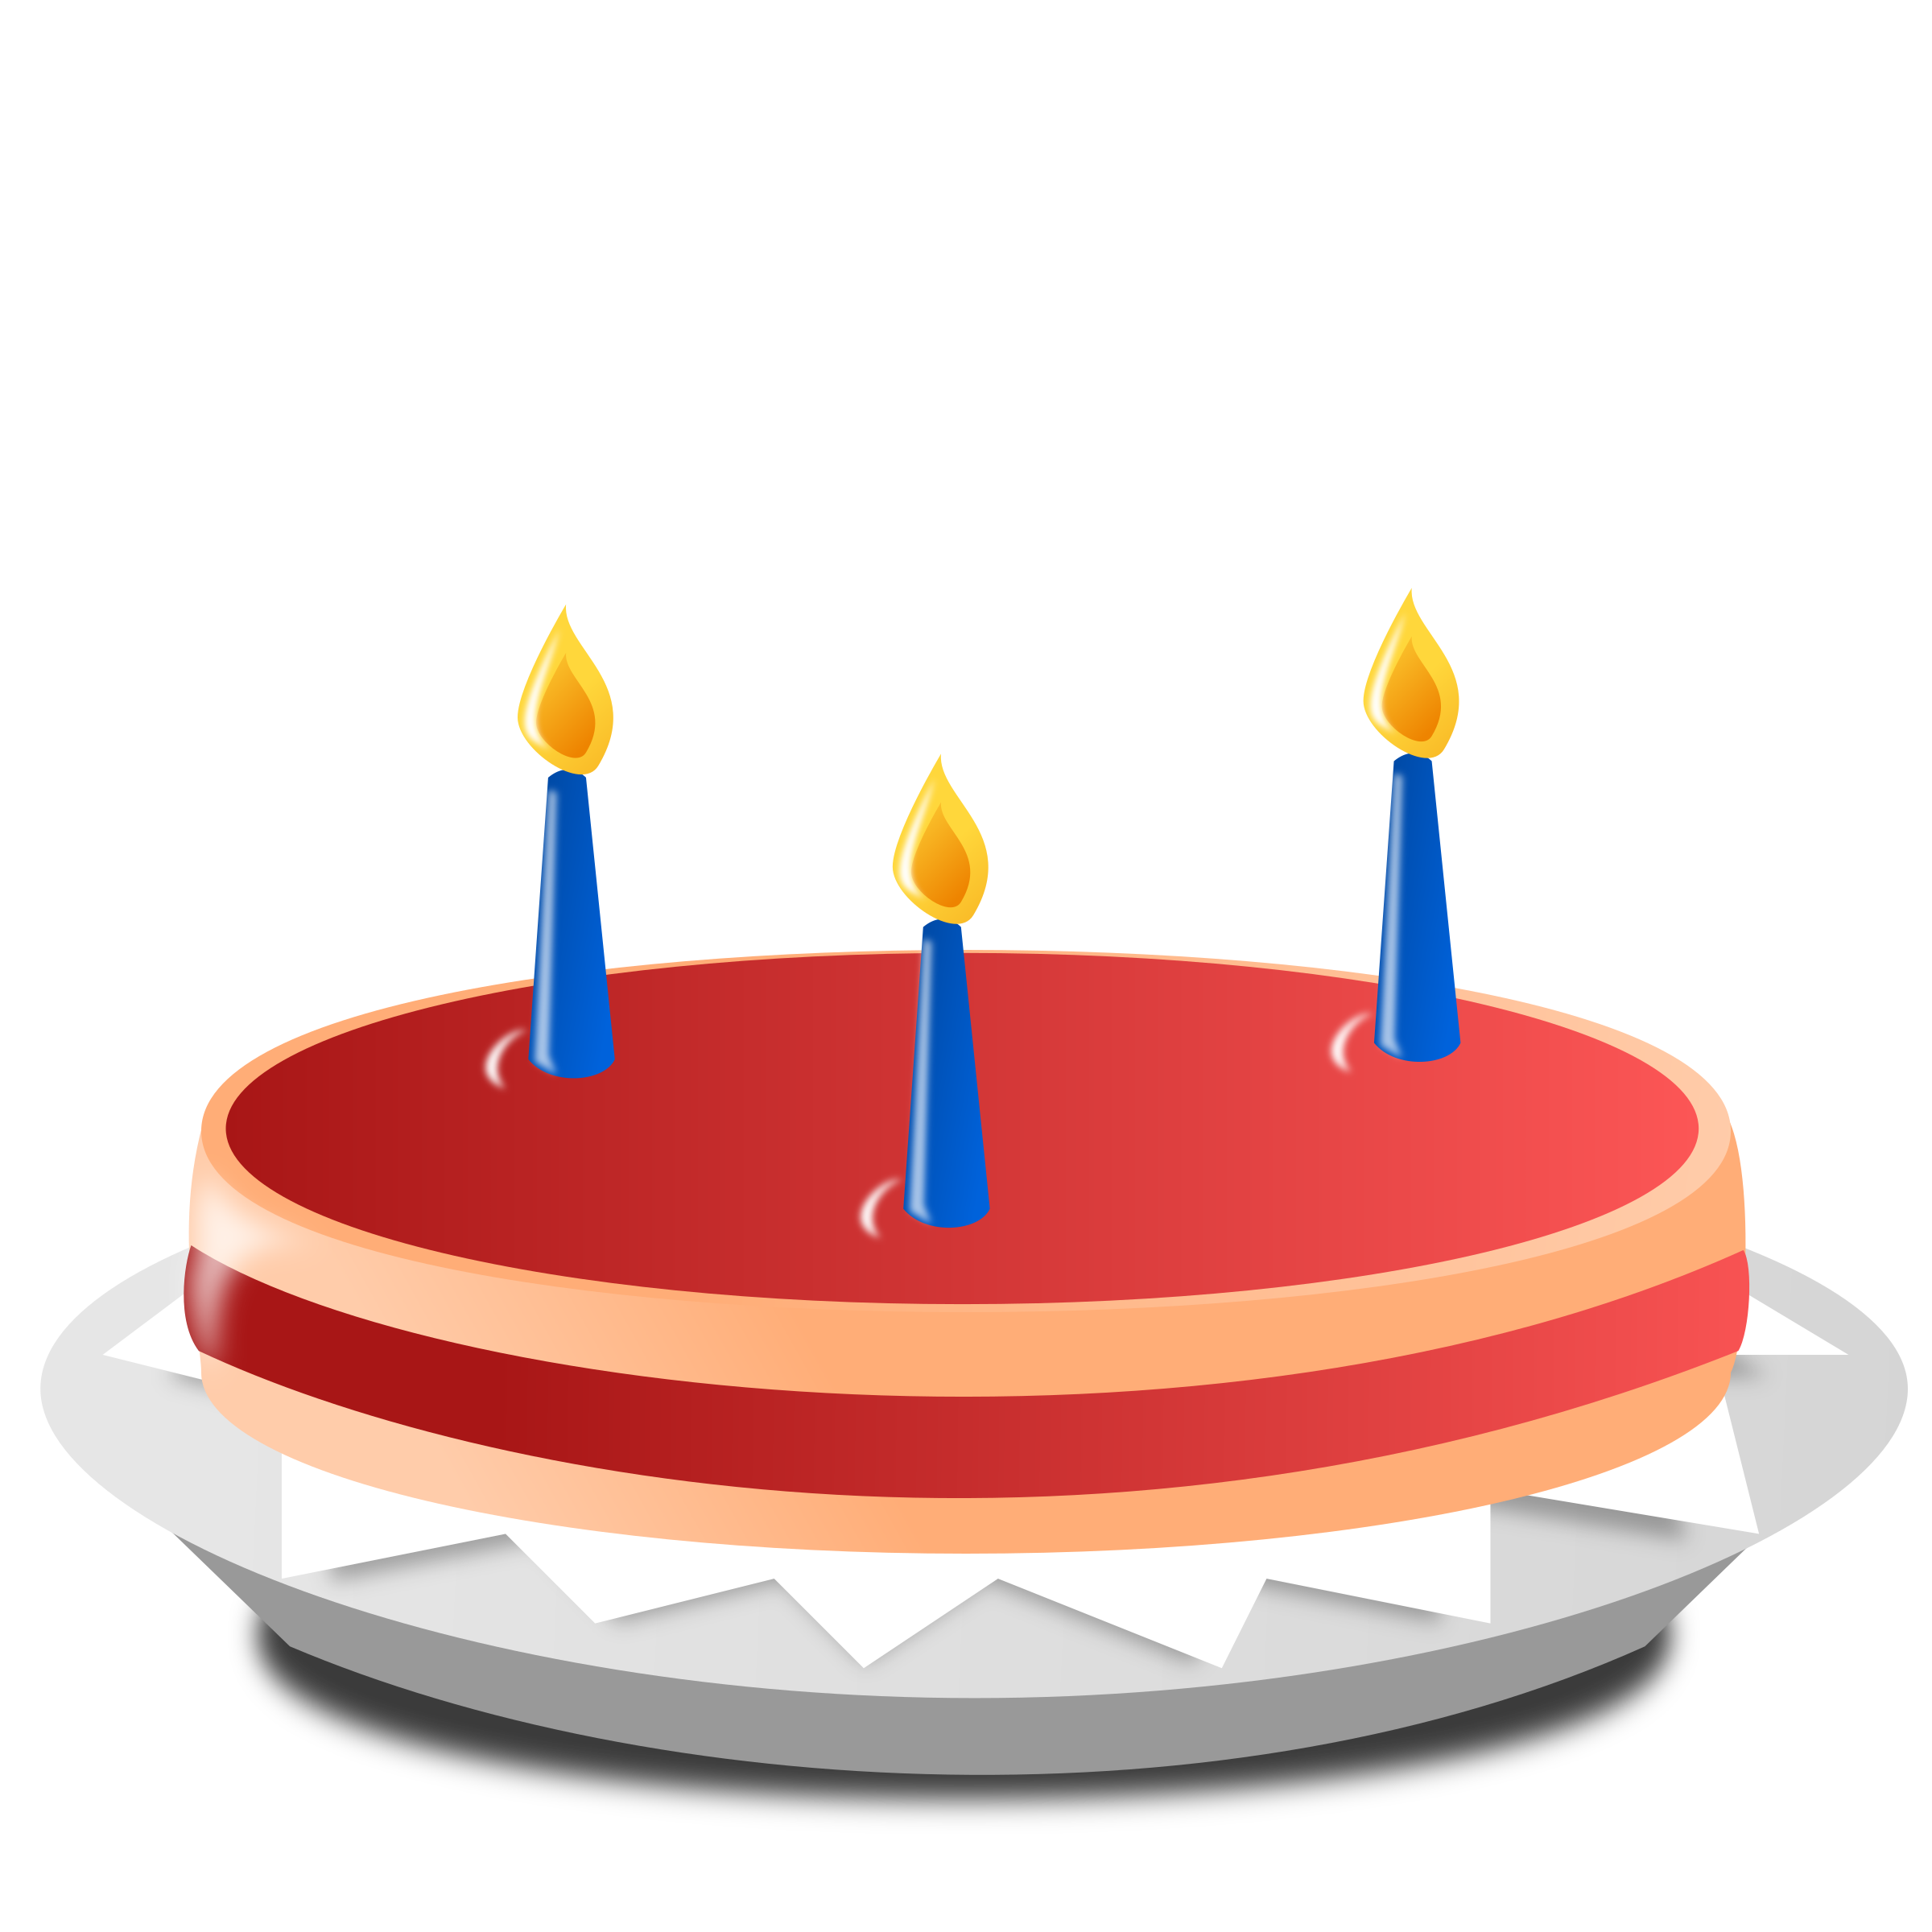 Red clipart cake.  candle icons png